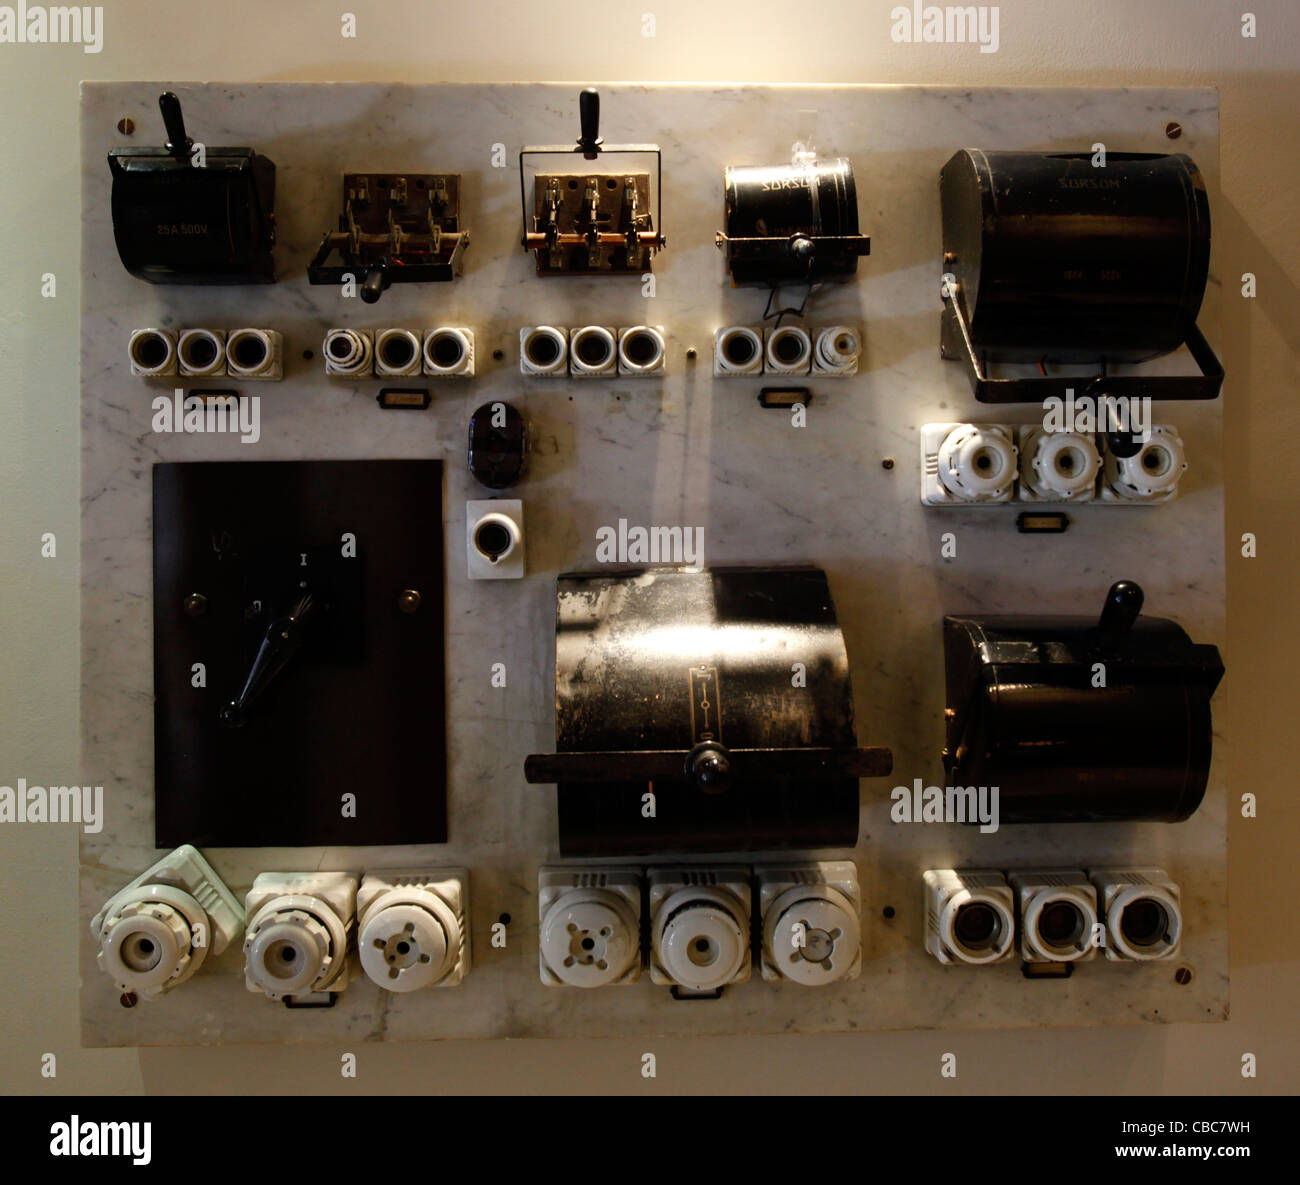 an old electric fuse box switchboard with ceramic fuses CBC7WH old fuses fuse box stock photos & old fuses fuse box stock images old electrical fuse box at bayanpartner.co